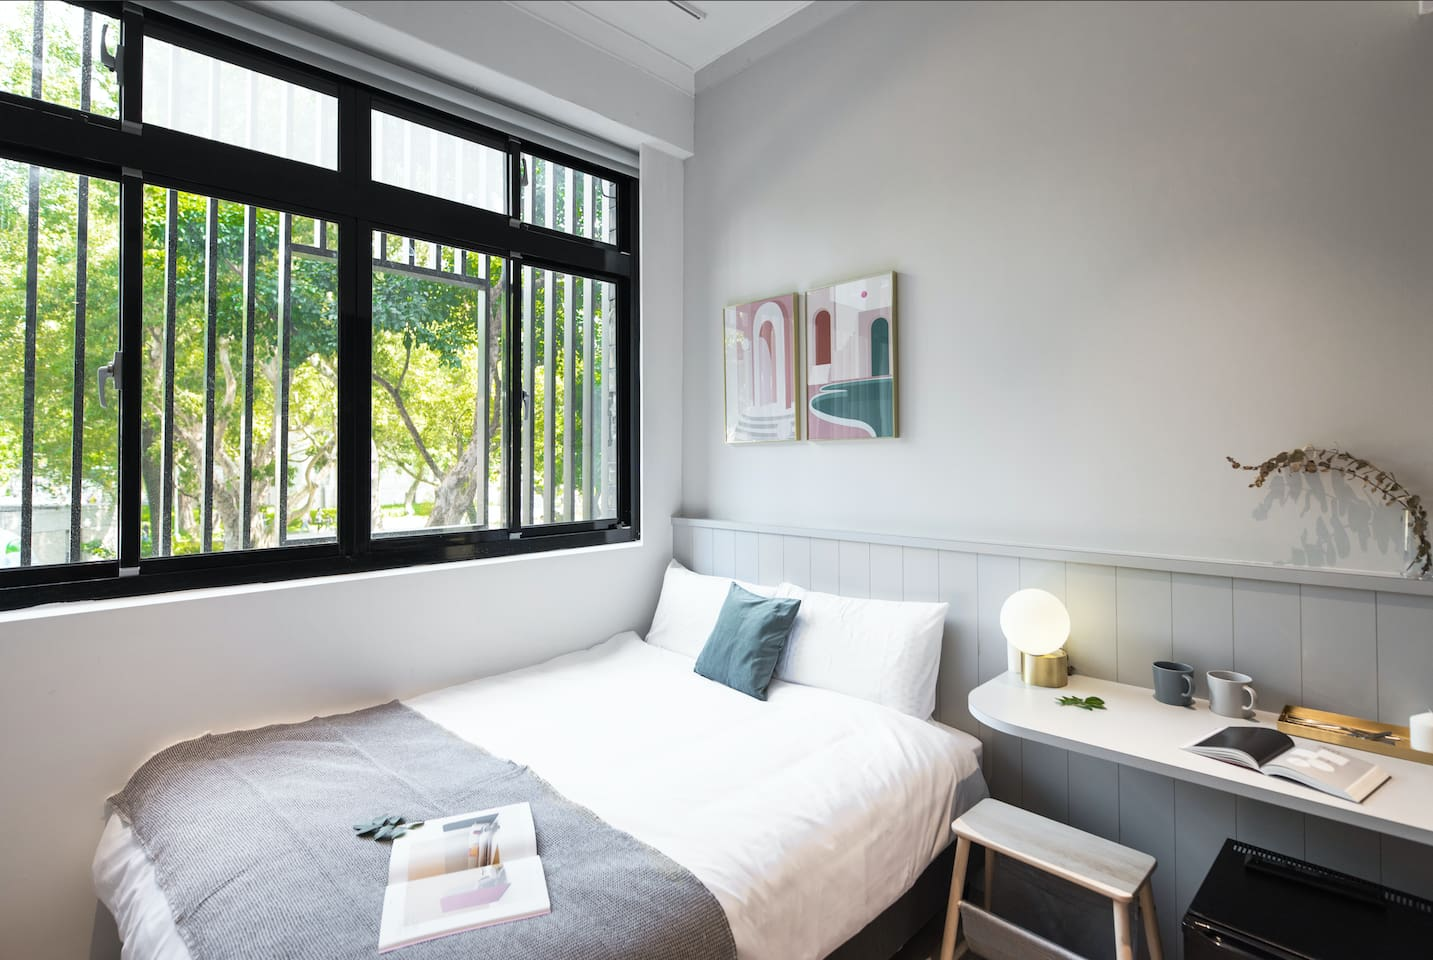 If you want to have a relaxing view from your room, this will be the best choice. You can exposure to the nature easily in Taipei City. Not only having the wonderful view but also locating conveniently.